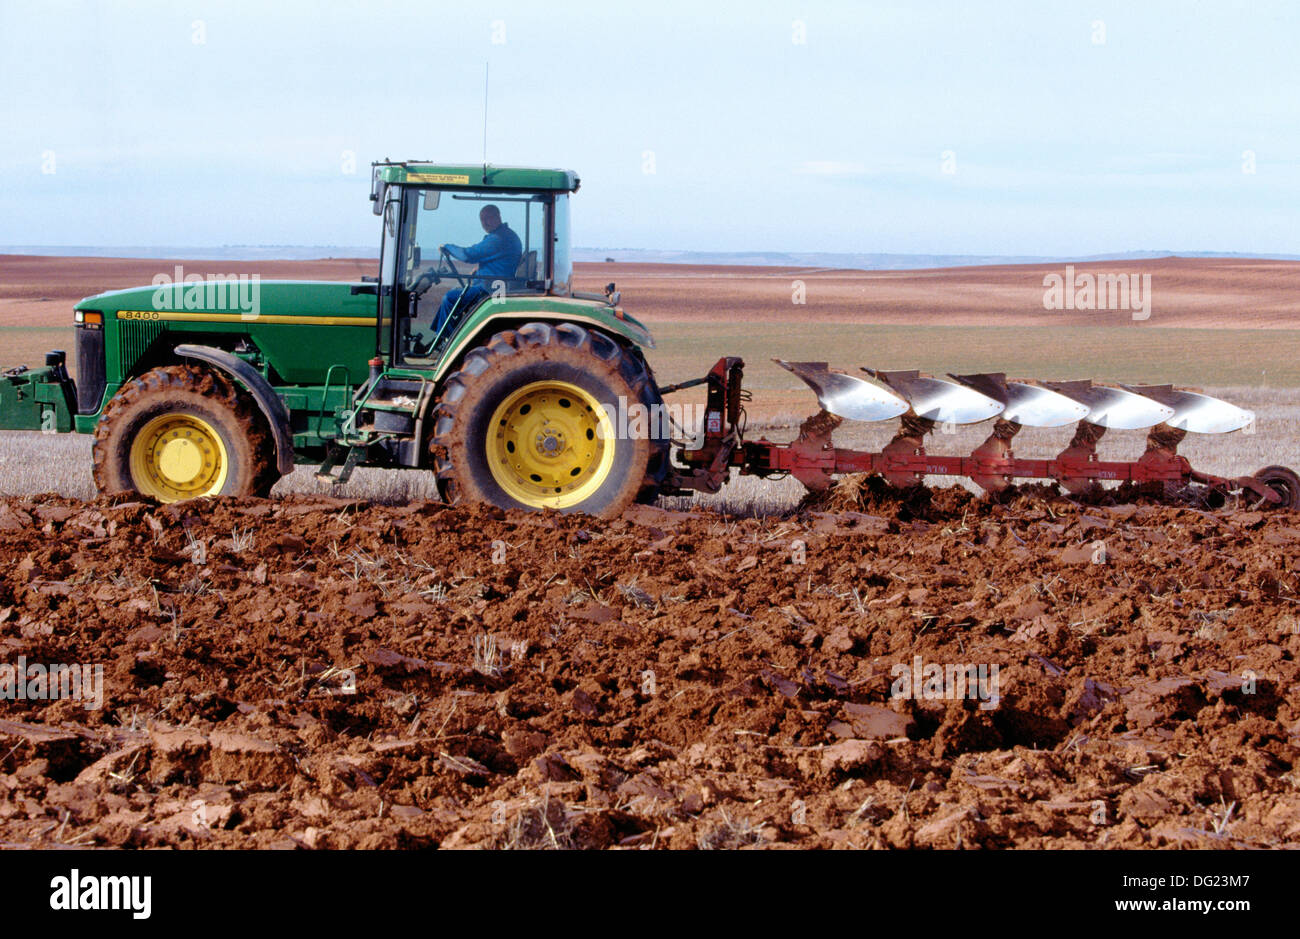 Tractor dragging a plough - Stock Image